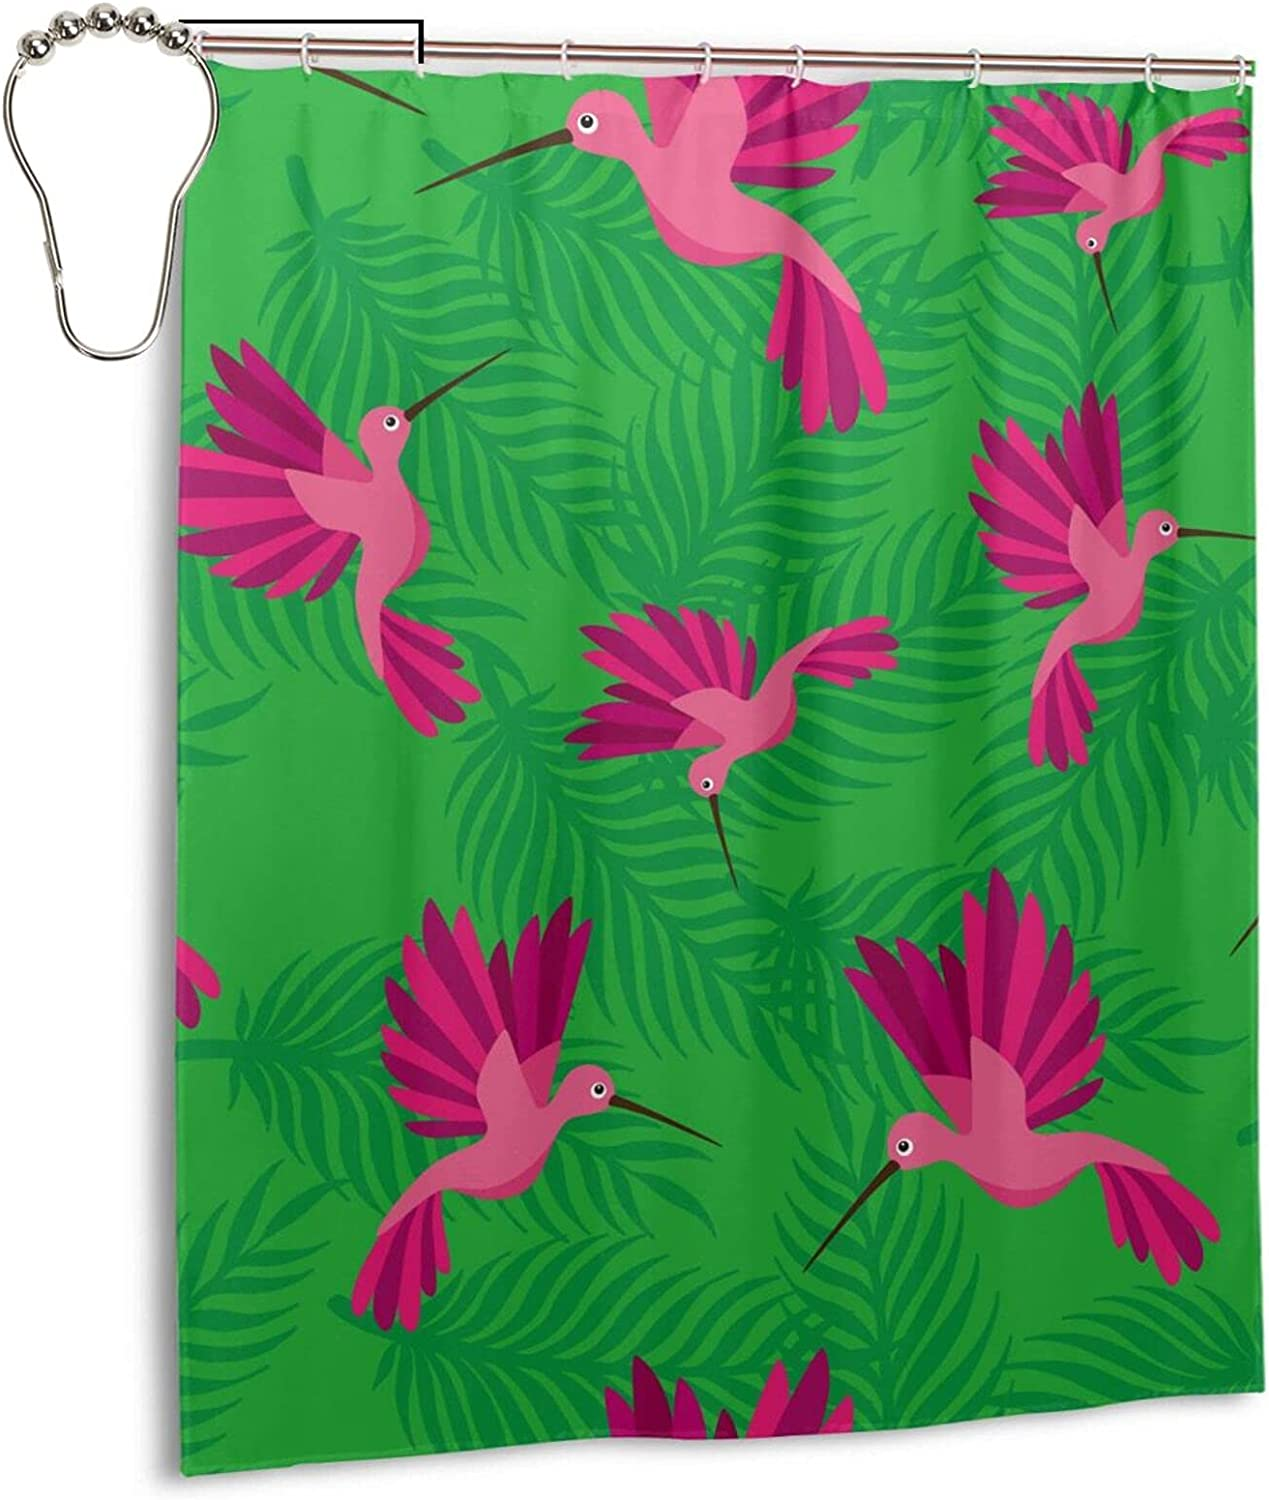 Directly managed store FuYin Little Colibri Small Bird and San Jose Mall Tropic Palm Cu Shower Leaves